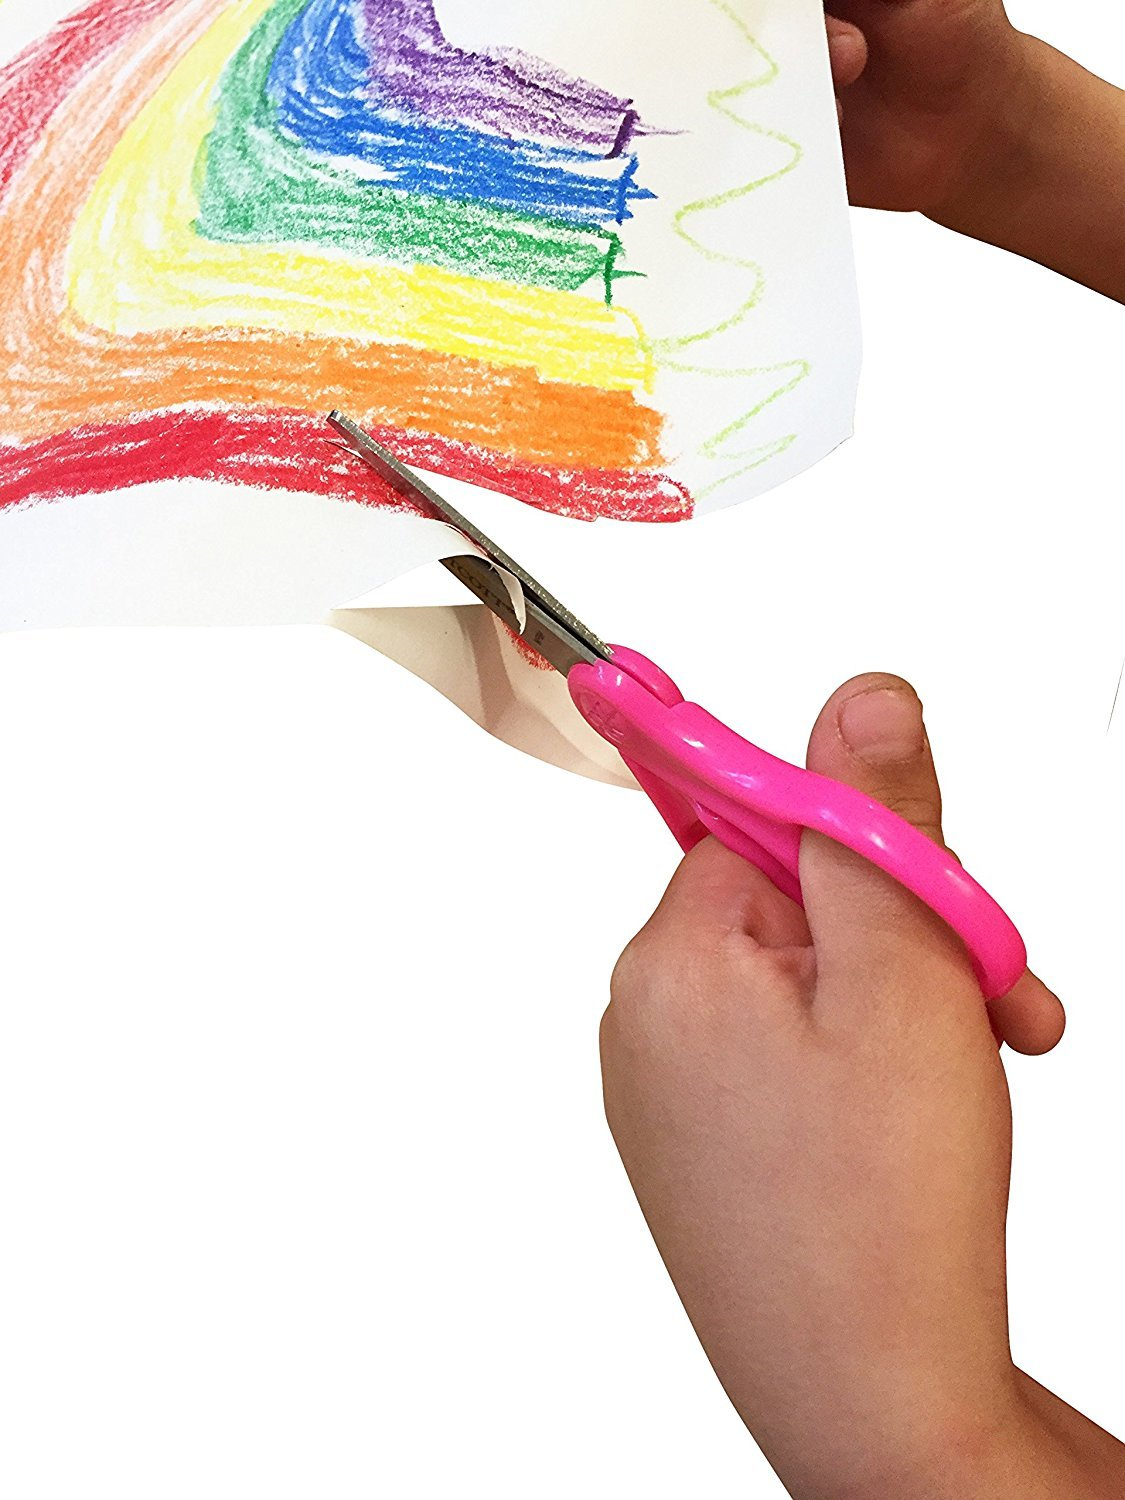 Westcott Right or Left Handed Kids Scissors, 5-Inch. Blunt, Assorted Colors (13130) by Westcott (Image #6)